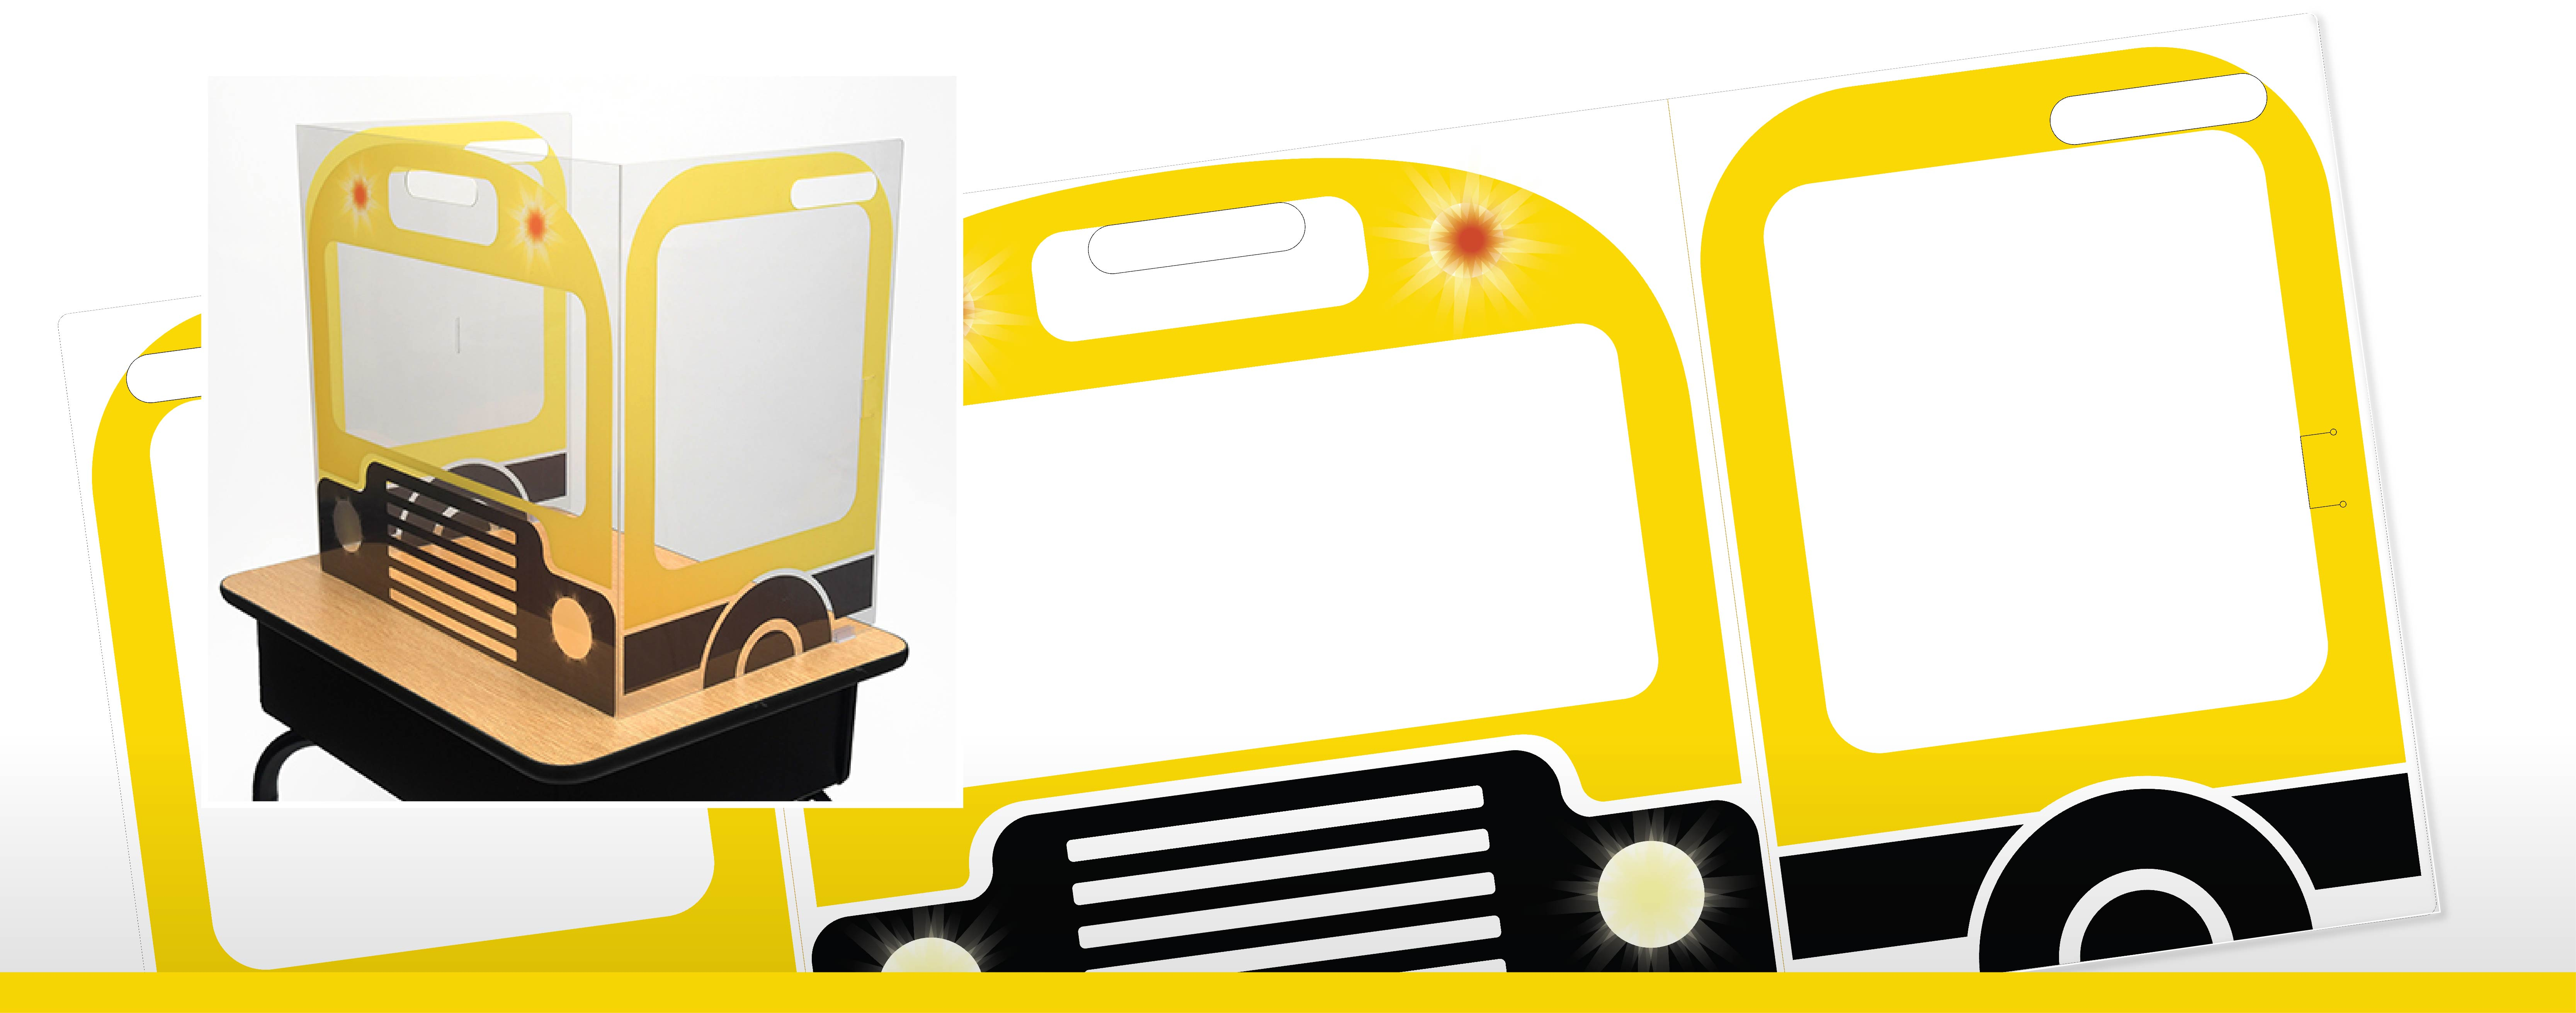 Yellow Bus Design for Adjoin's FunView Graphic Panels